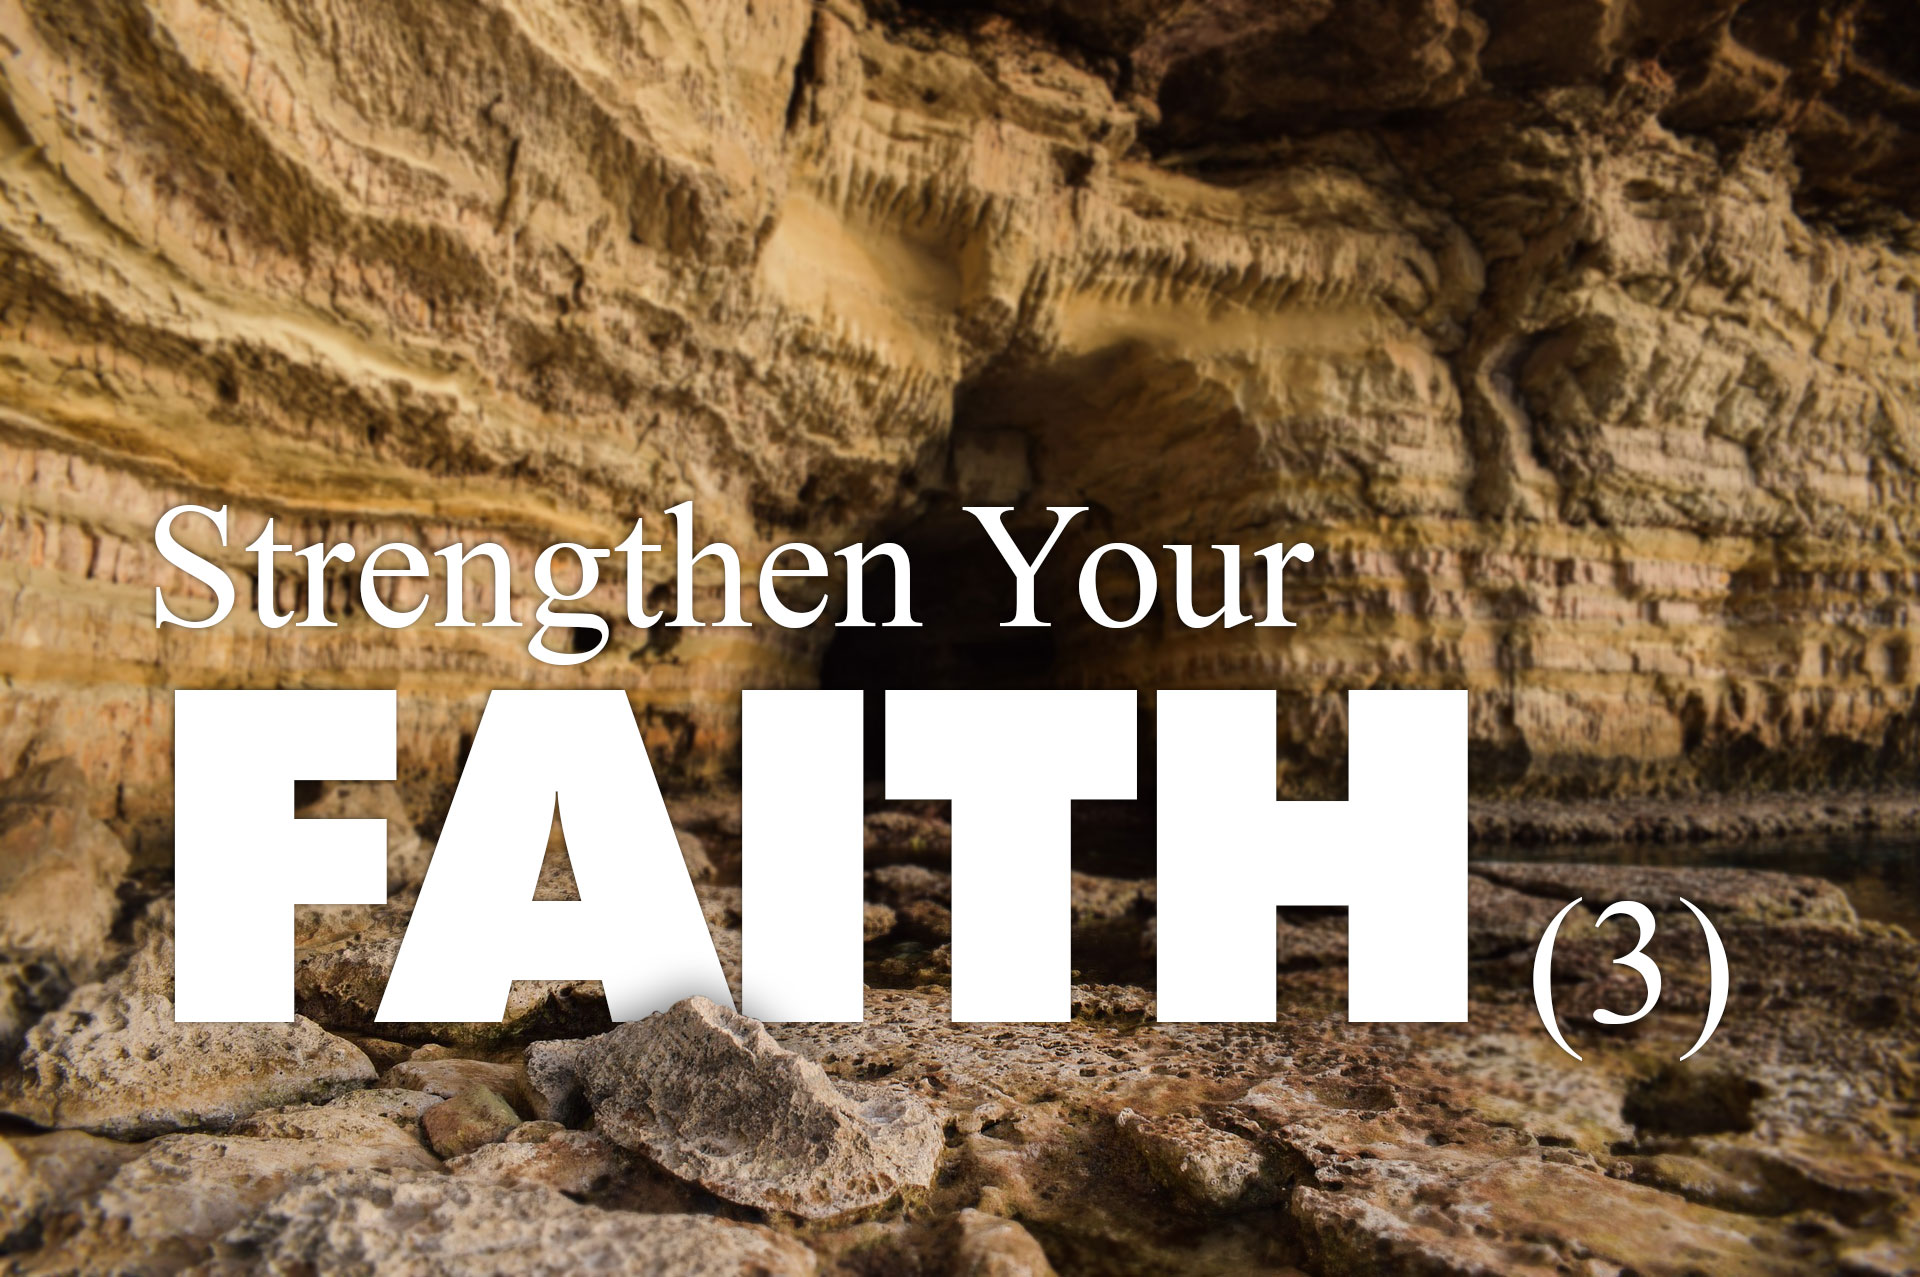 Strenghthen-your-faith-3